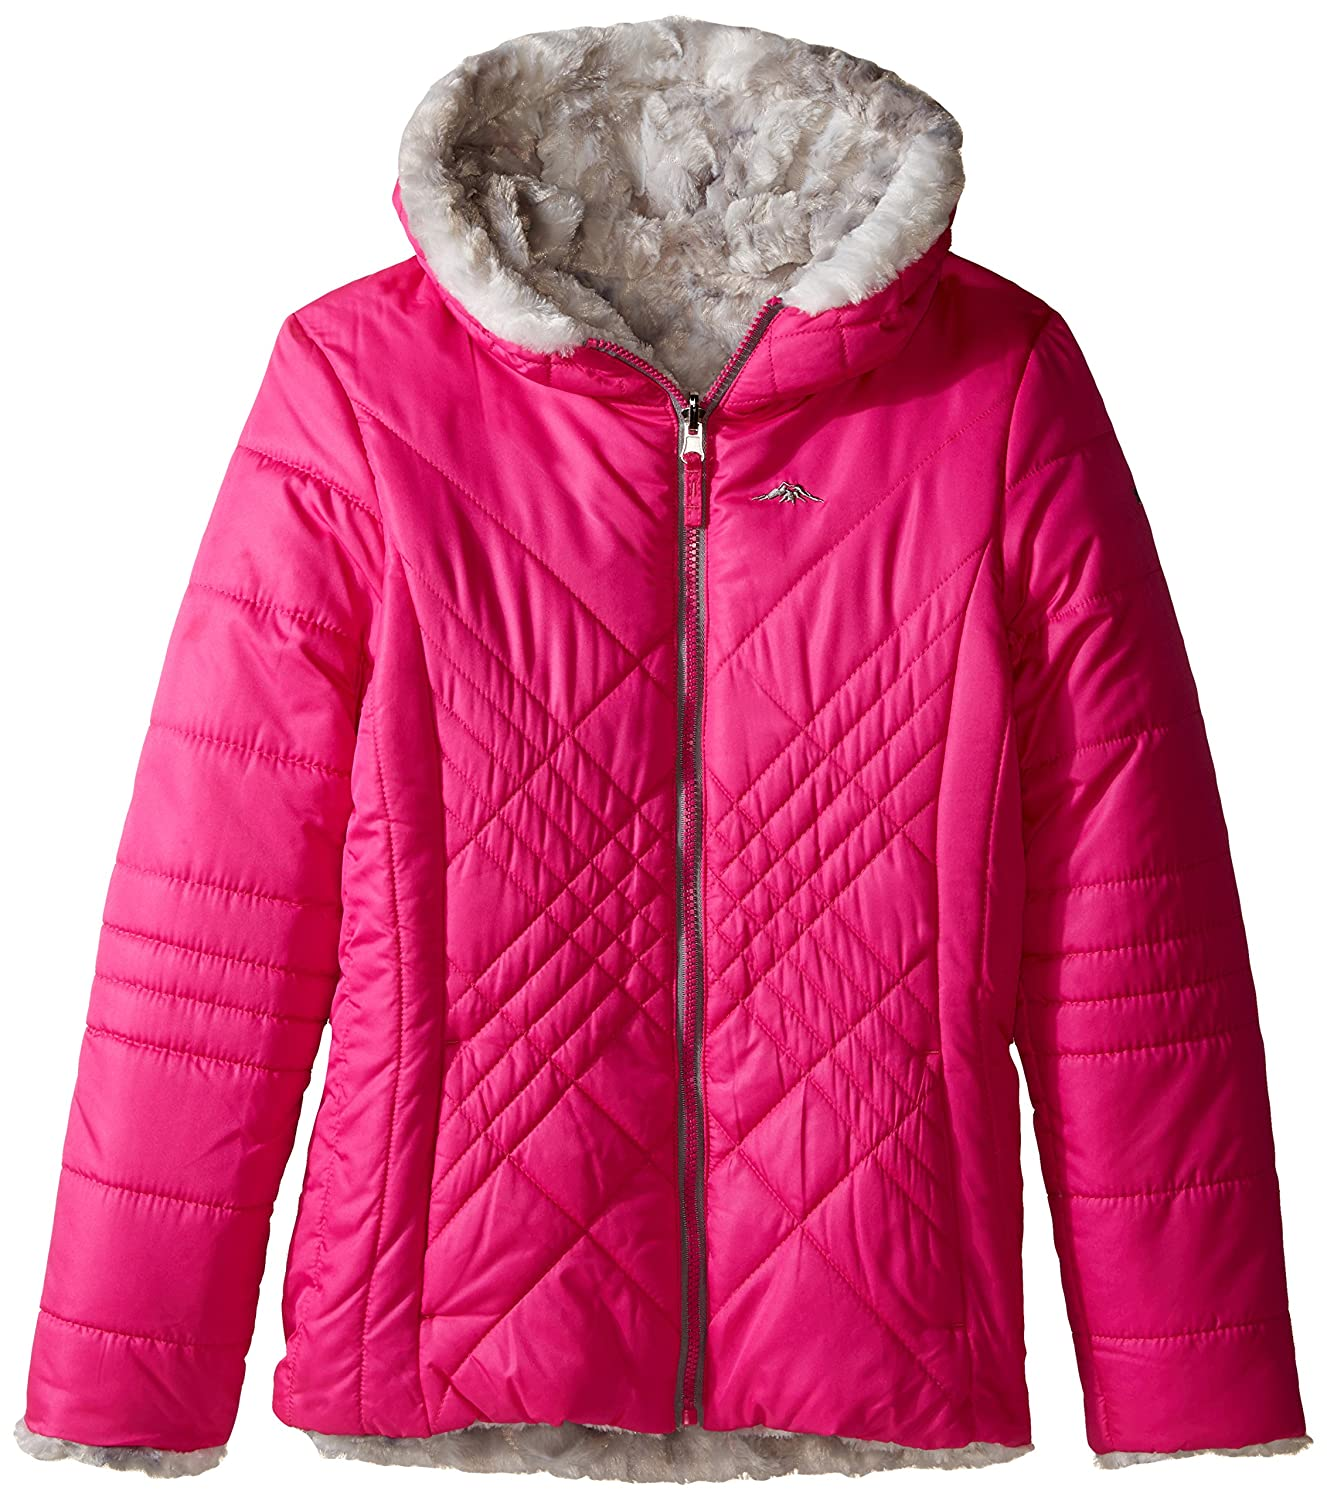 Pacific Trail Girls' Big Reversible Quilted Jacket to Tye Die Faux Fur 2F60363